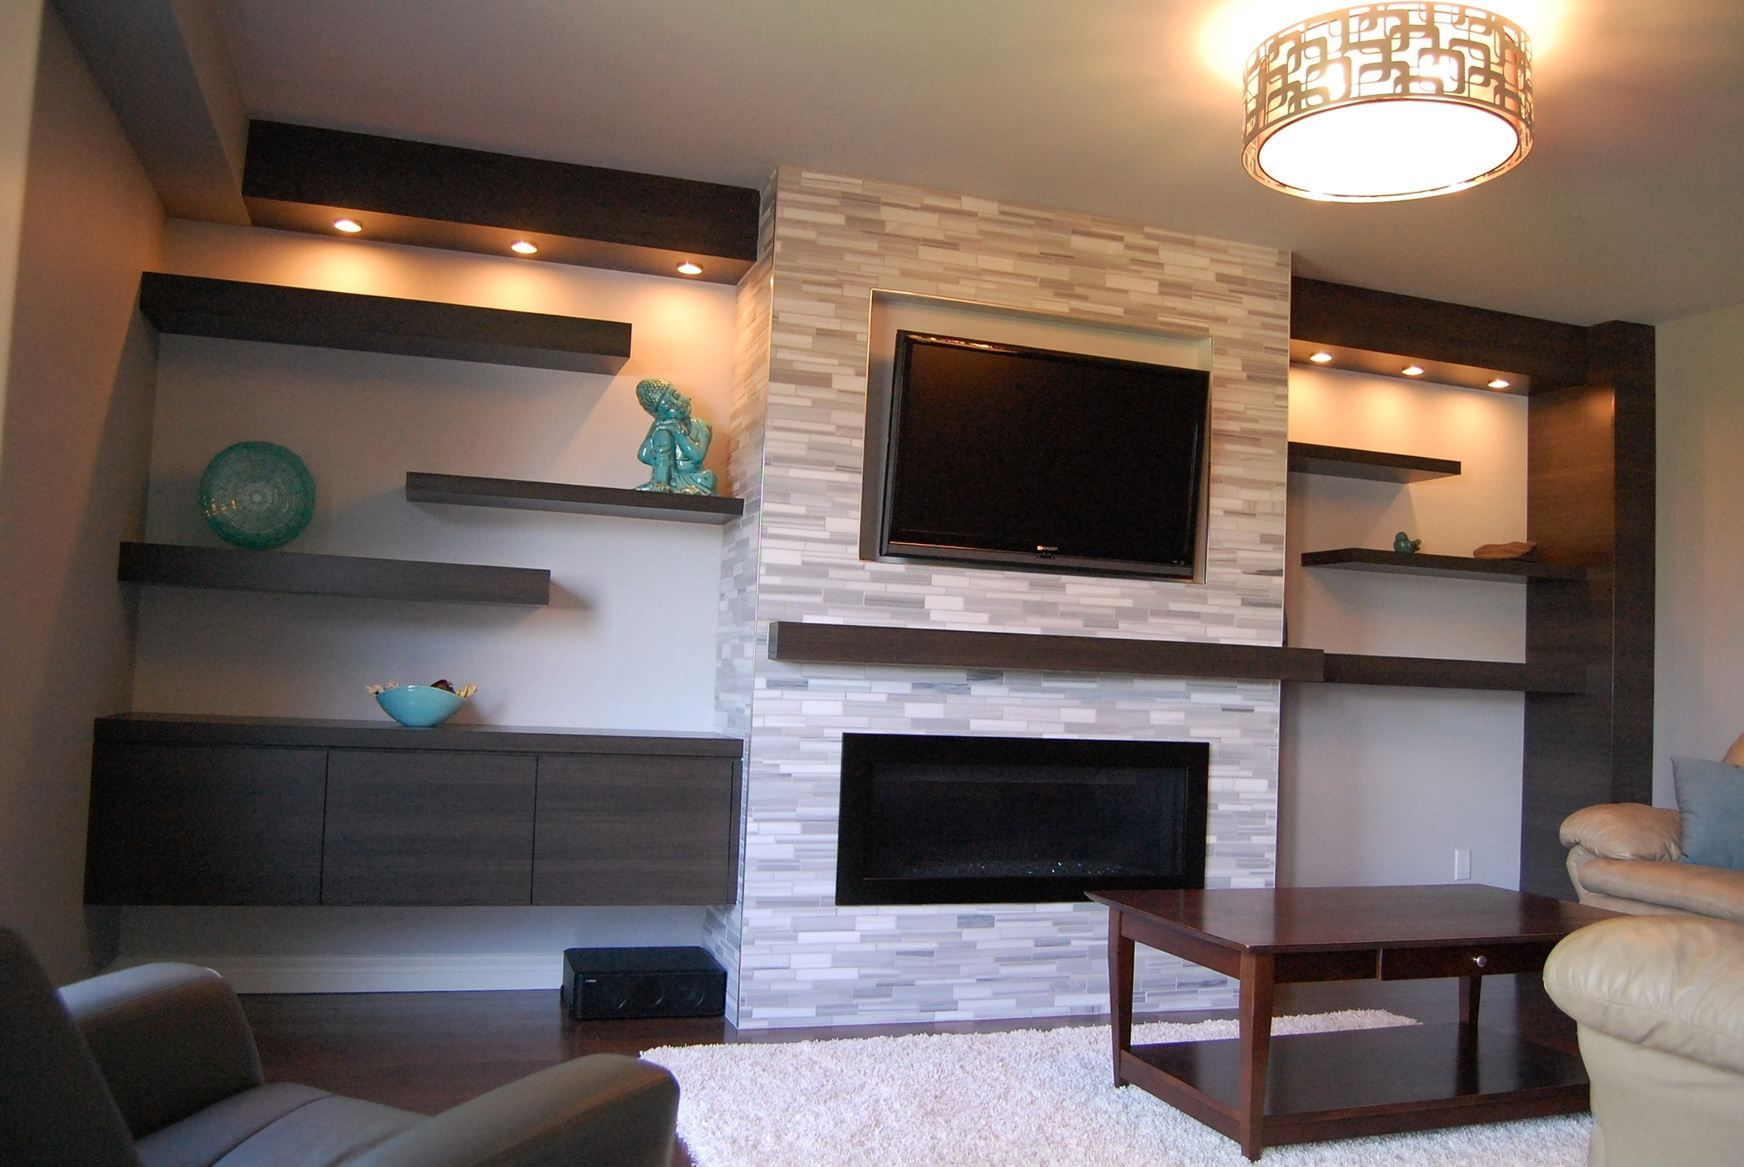 shiplap img and boards wall hd a appearance using patterned tiles tiled fireplace makeover